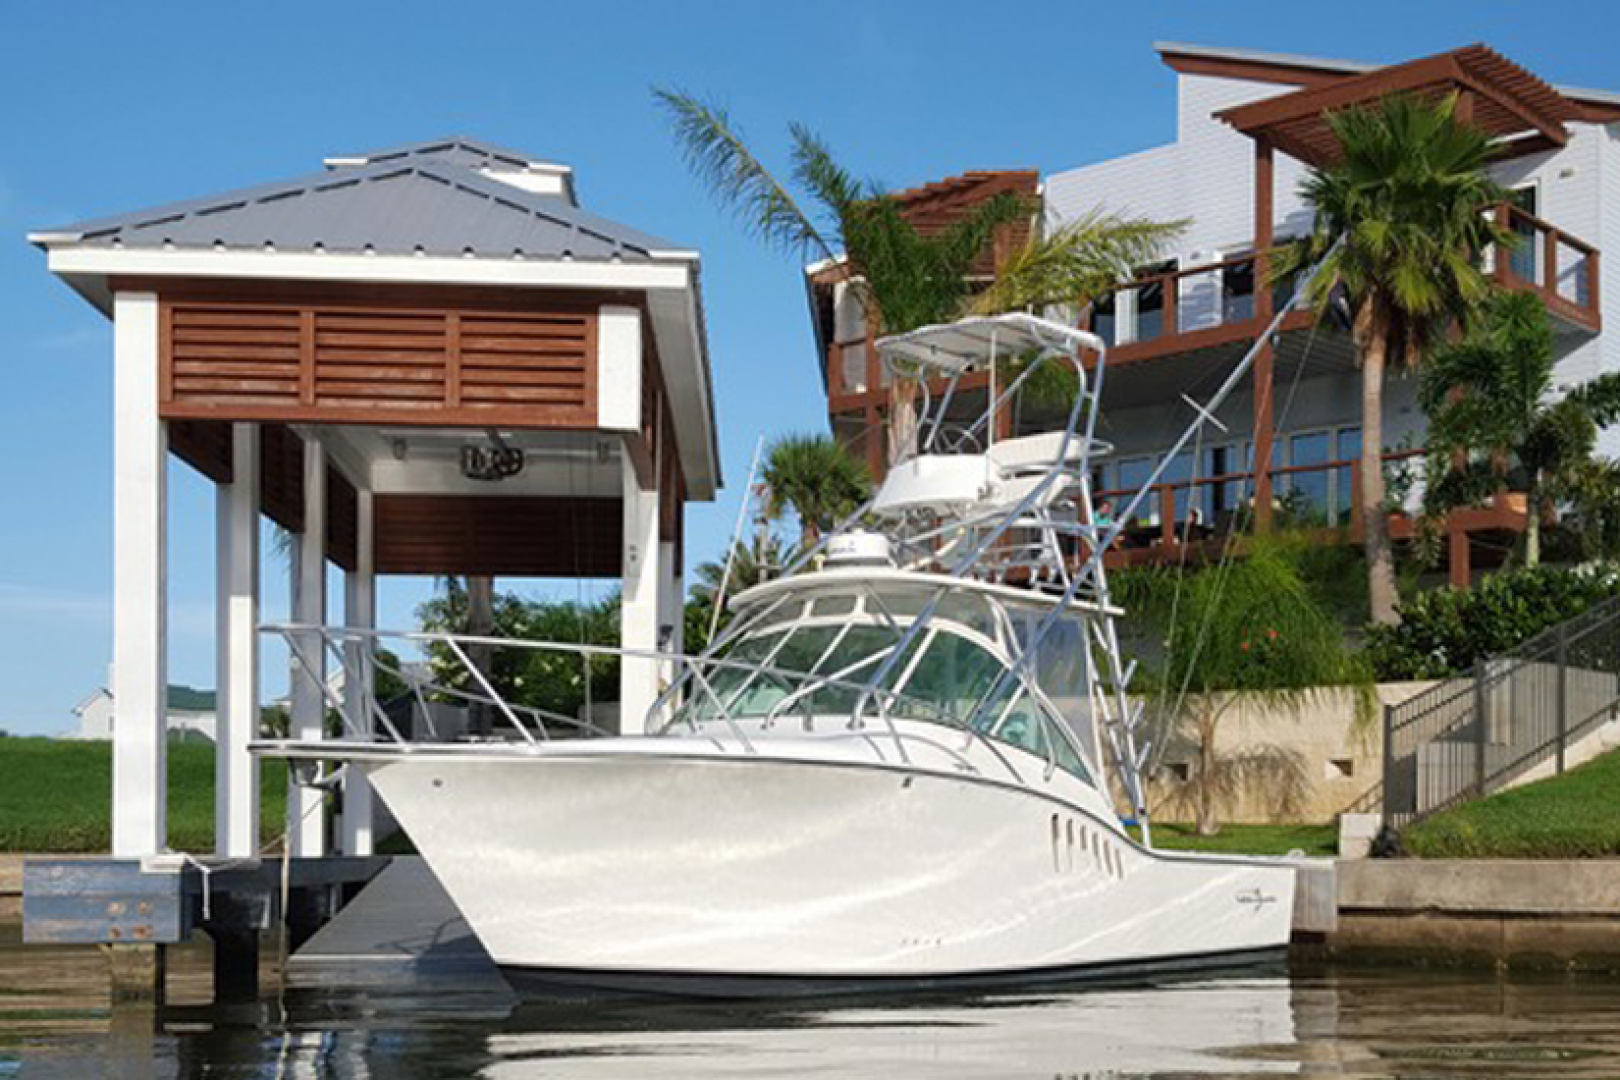 Papi Chulo is a Albemarle 290 XF Yacht For Sale in Galveston-Papi Chulo Albemarle 2008 29 XF-0